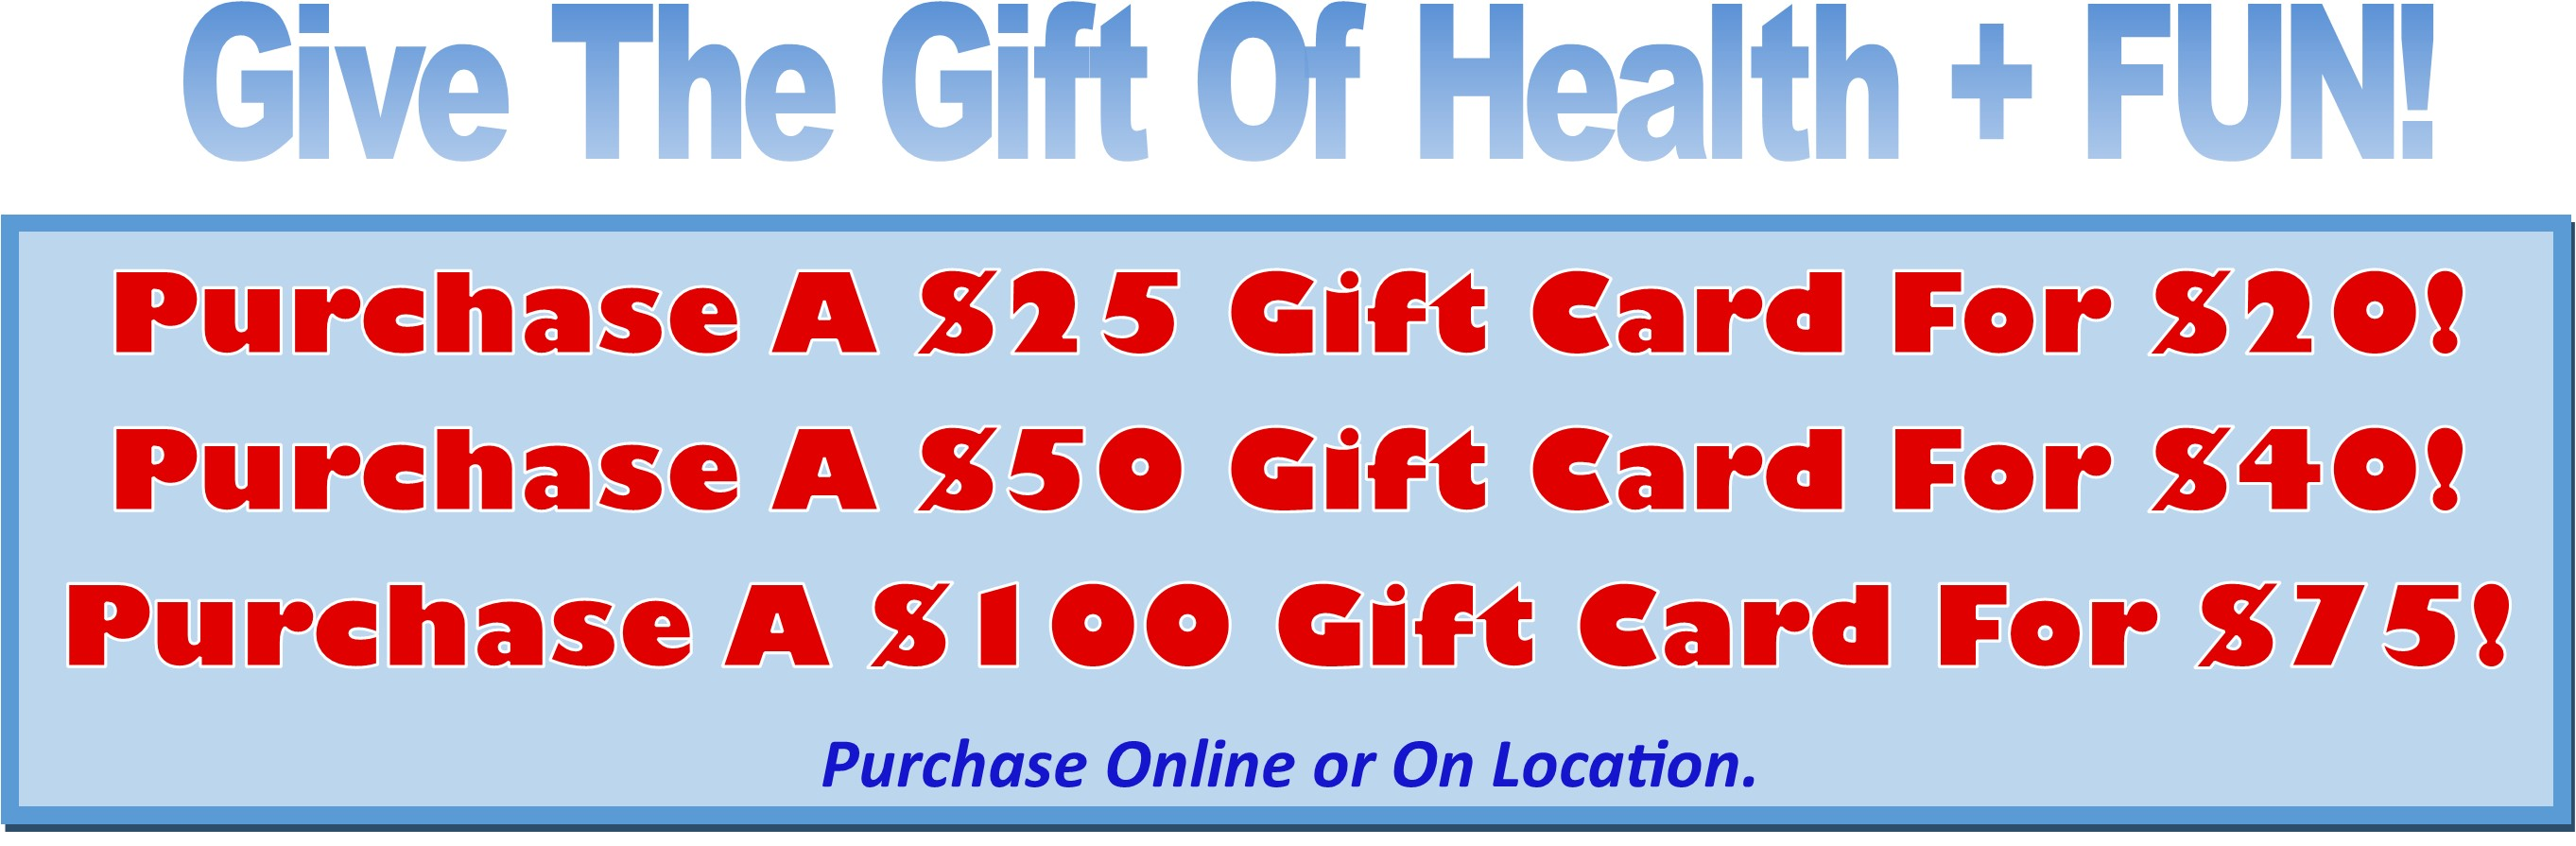 gift cards lakeshore roller world